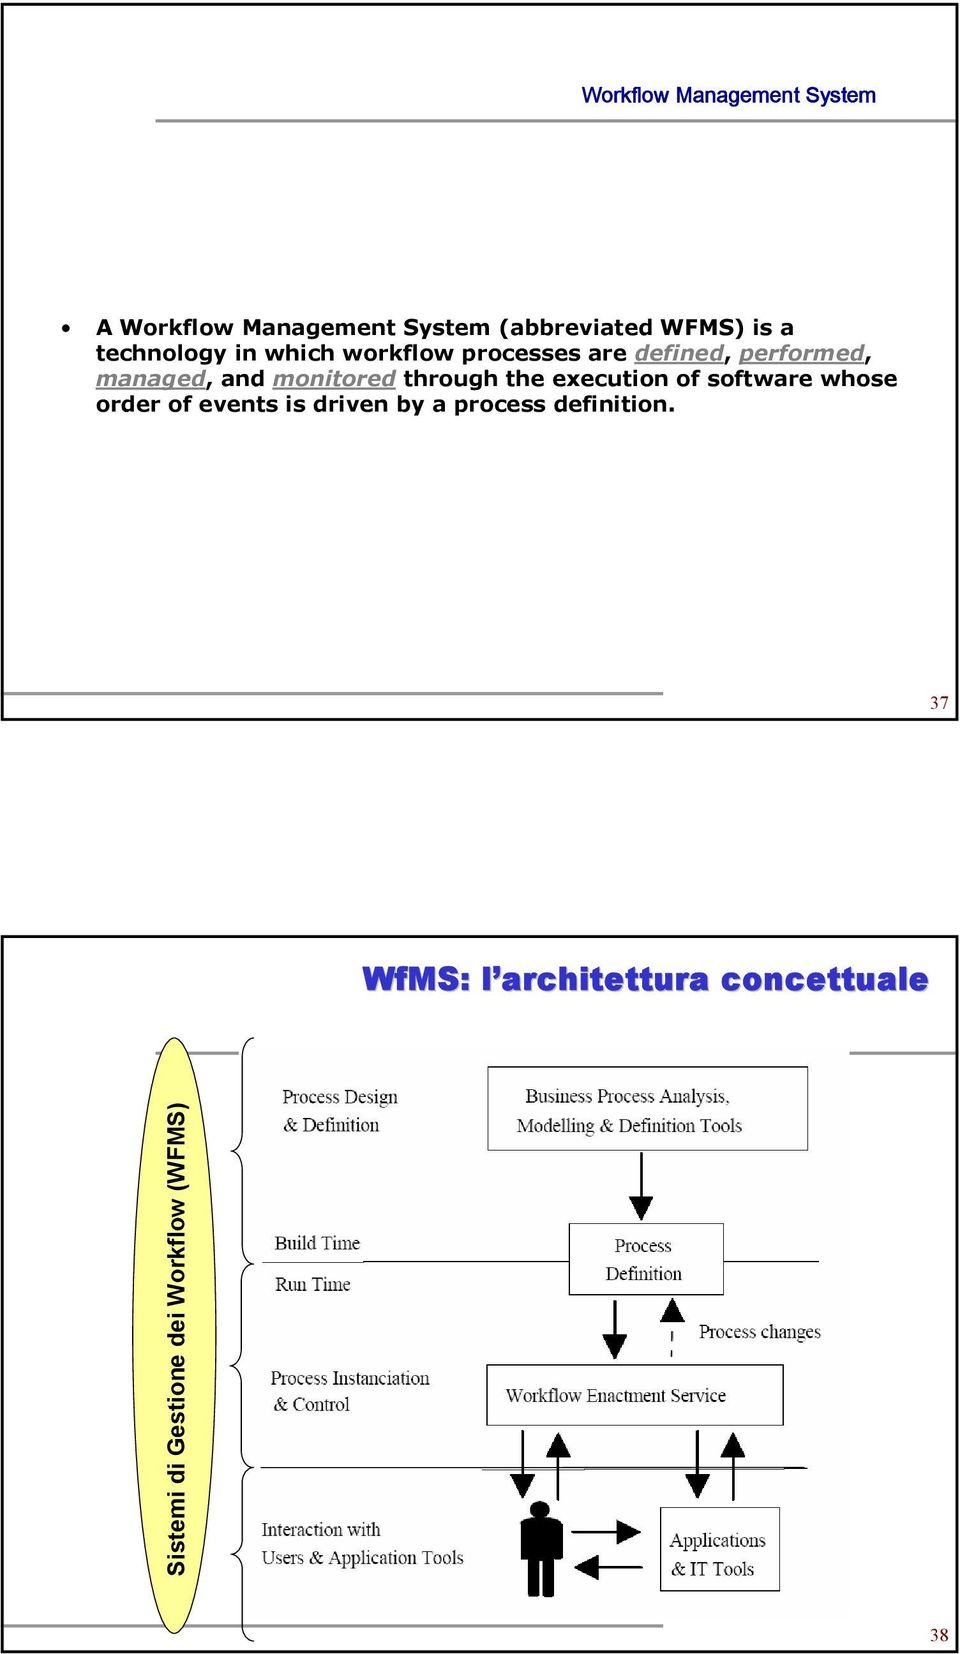 monitored through the execution of software whose order of events is driven by a